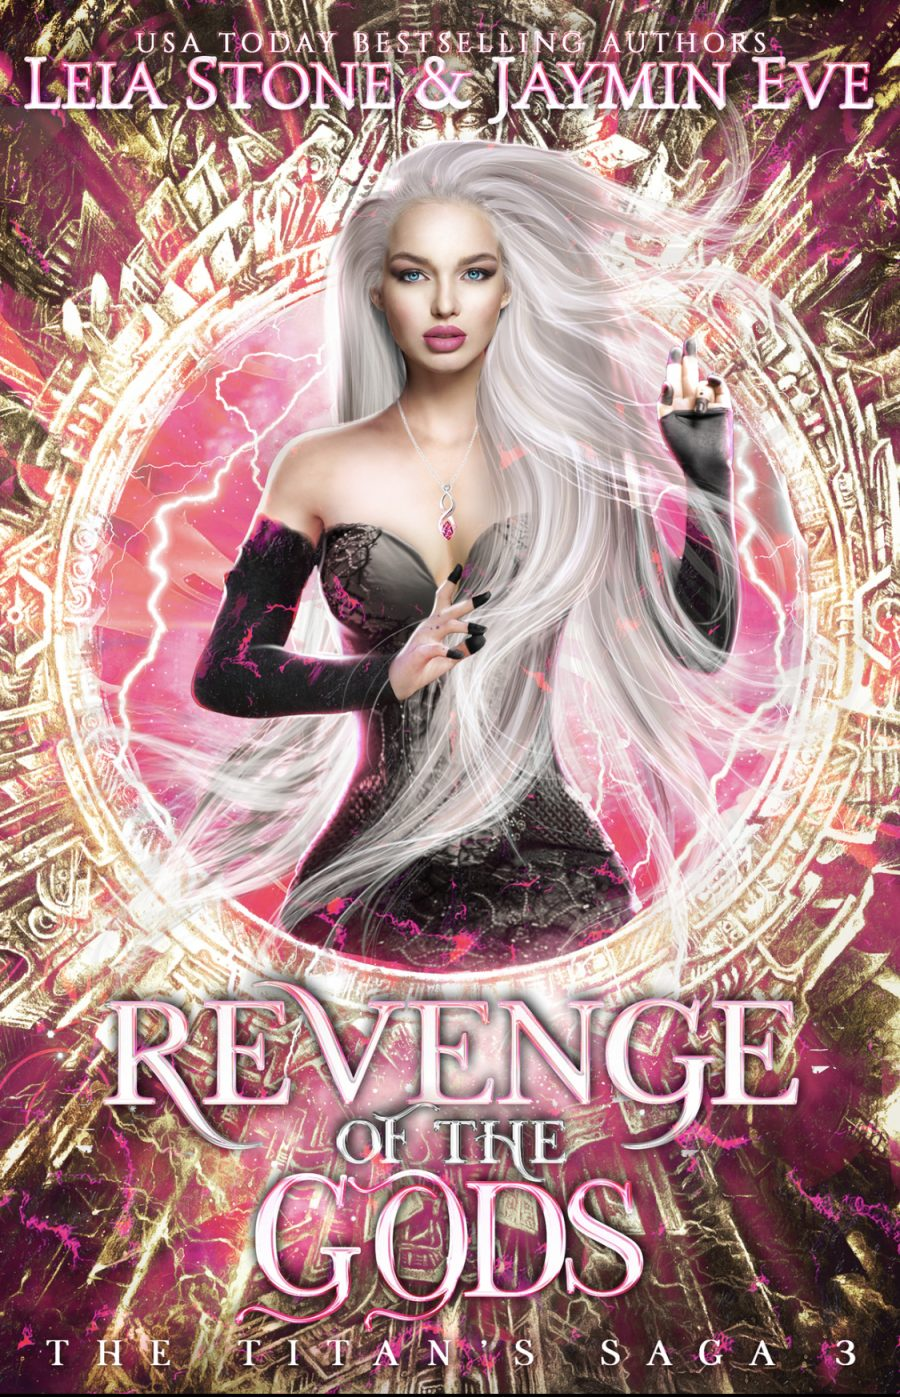 Revenge of The Gods by Jaymin Eve & Leia Stone - A Book Review #BookReview #NewRelease #SeriesComplete #PNR #Gram